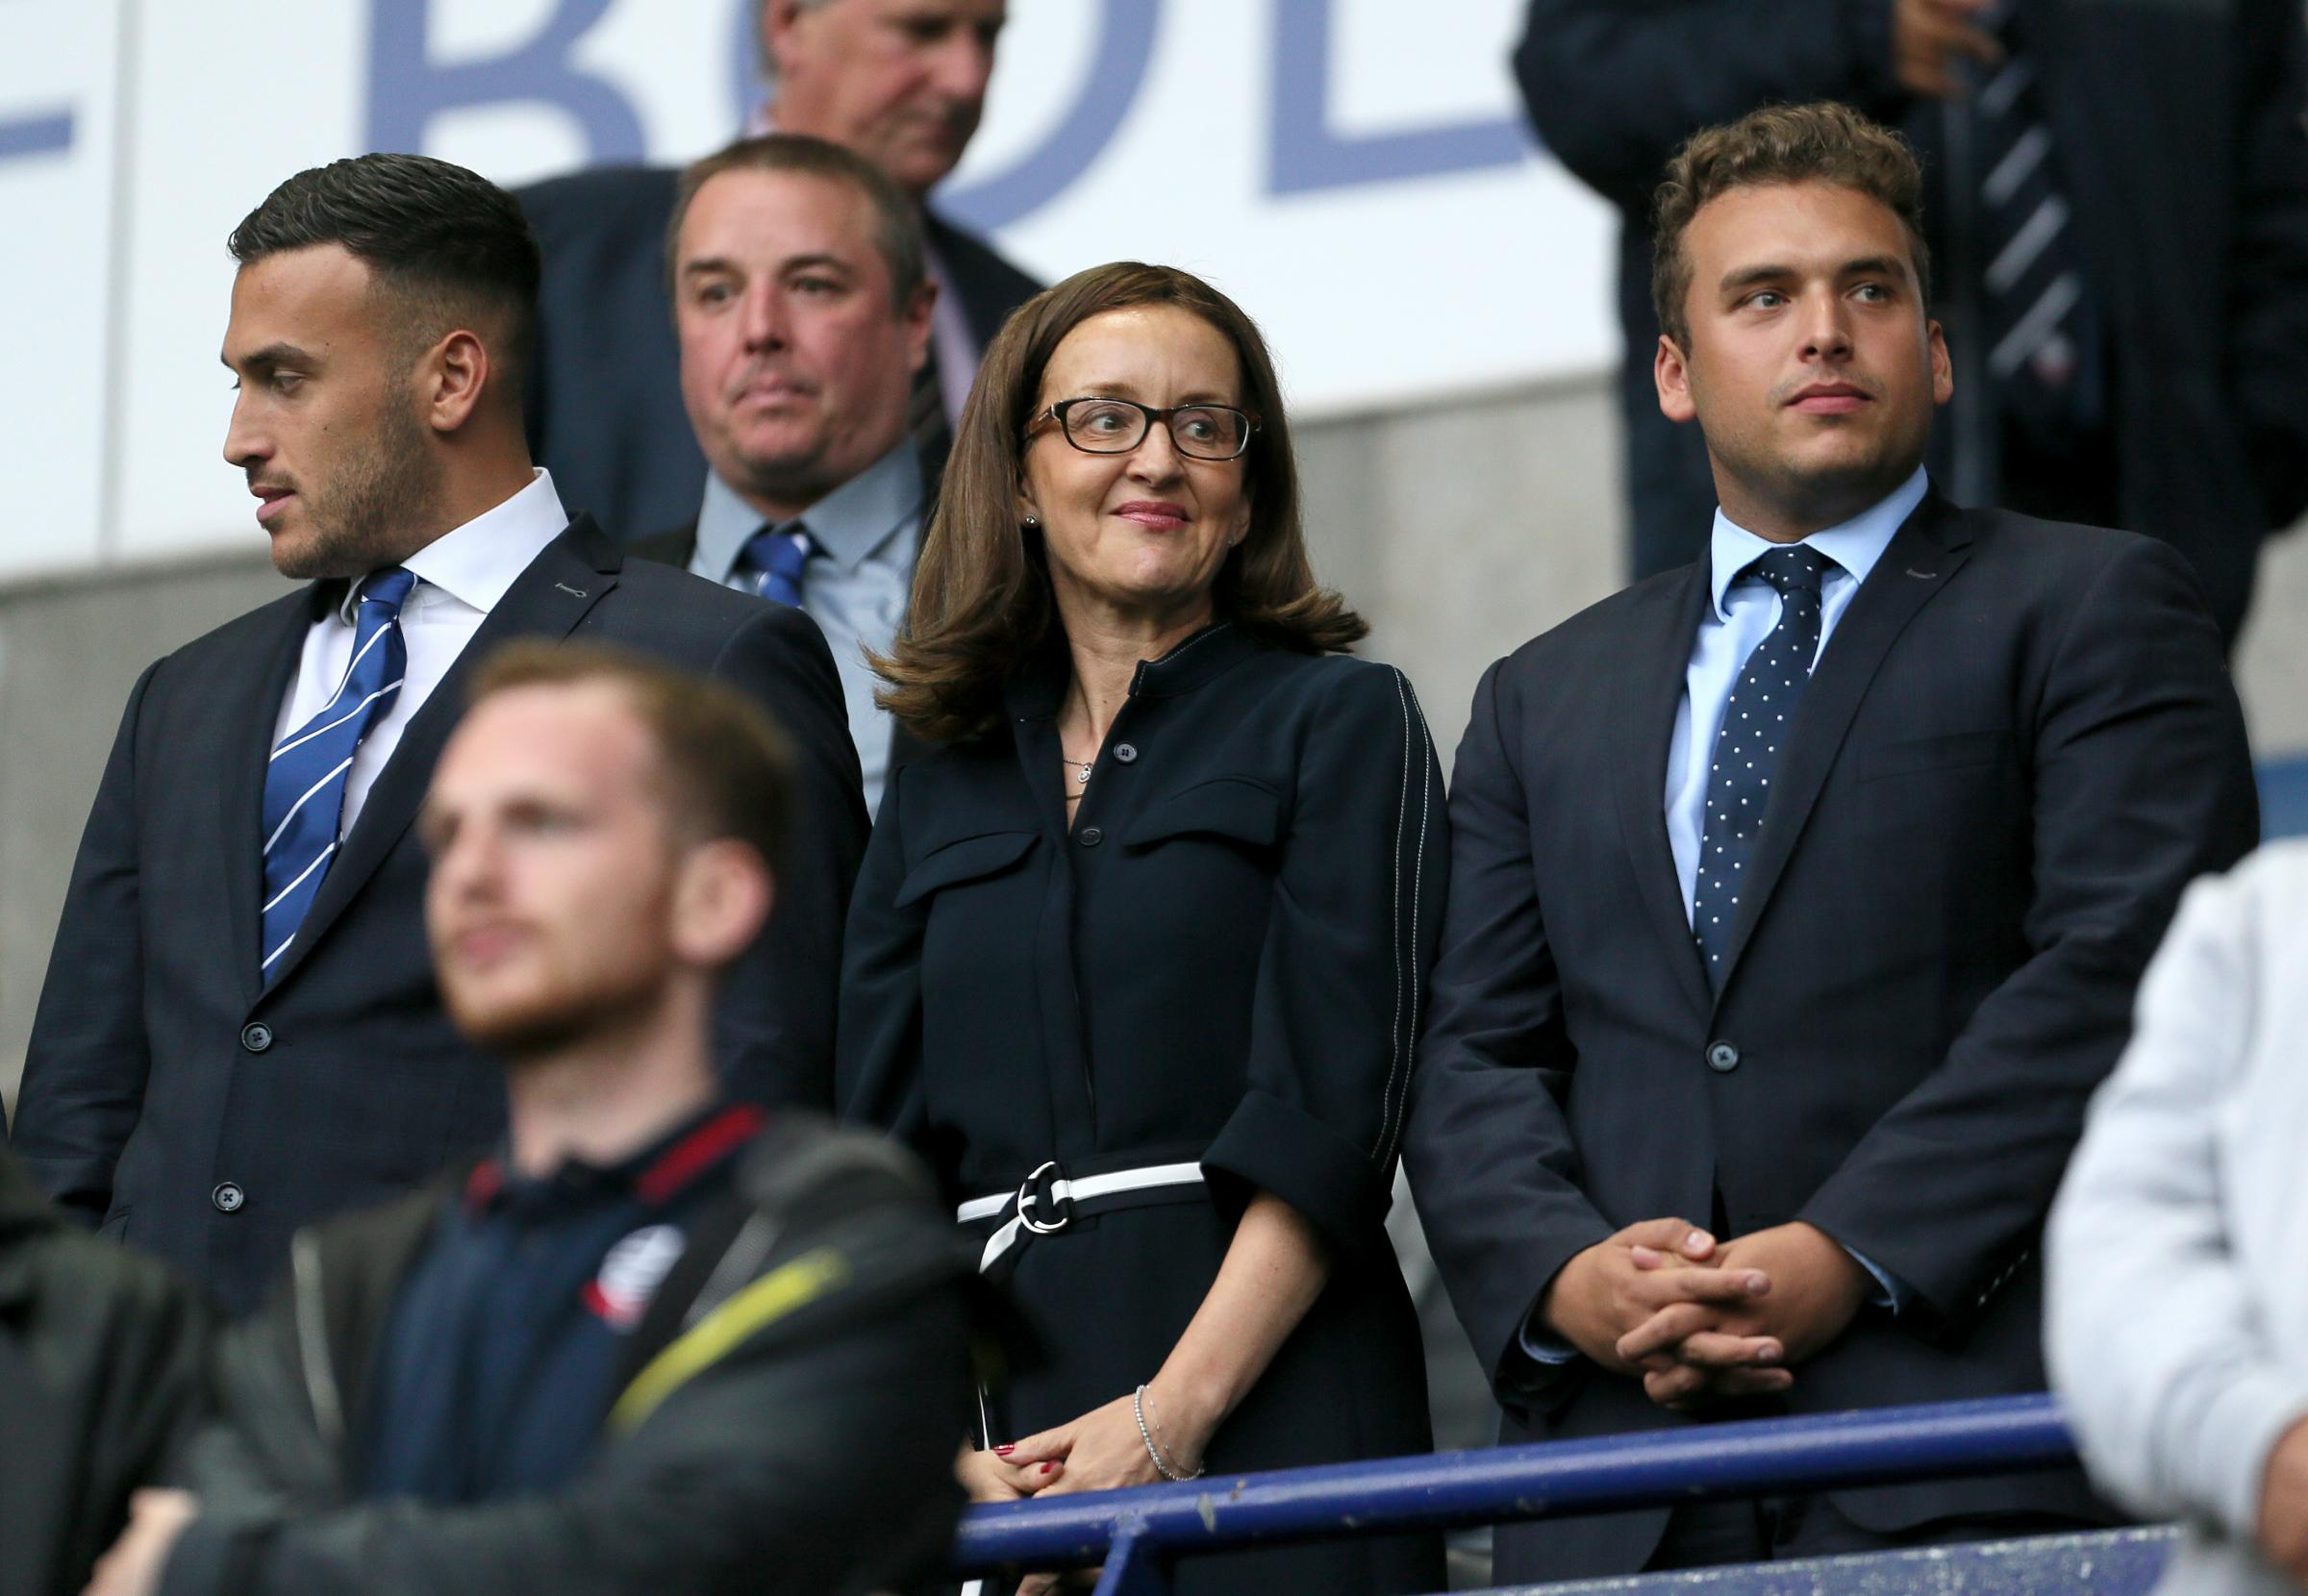 Sharon Brittan's message for Bolton Wanderers fans ahead of Wigan Athletic clash